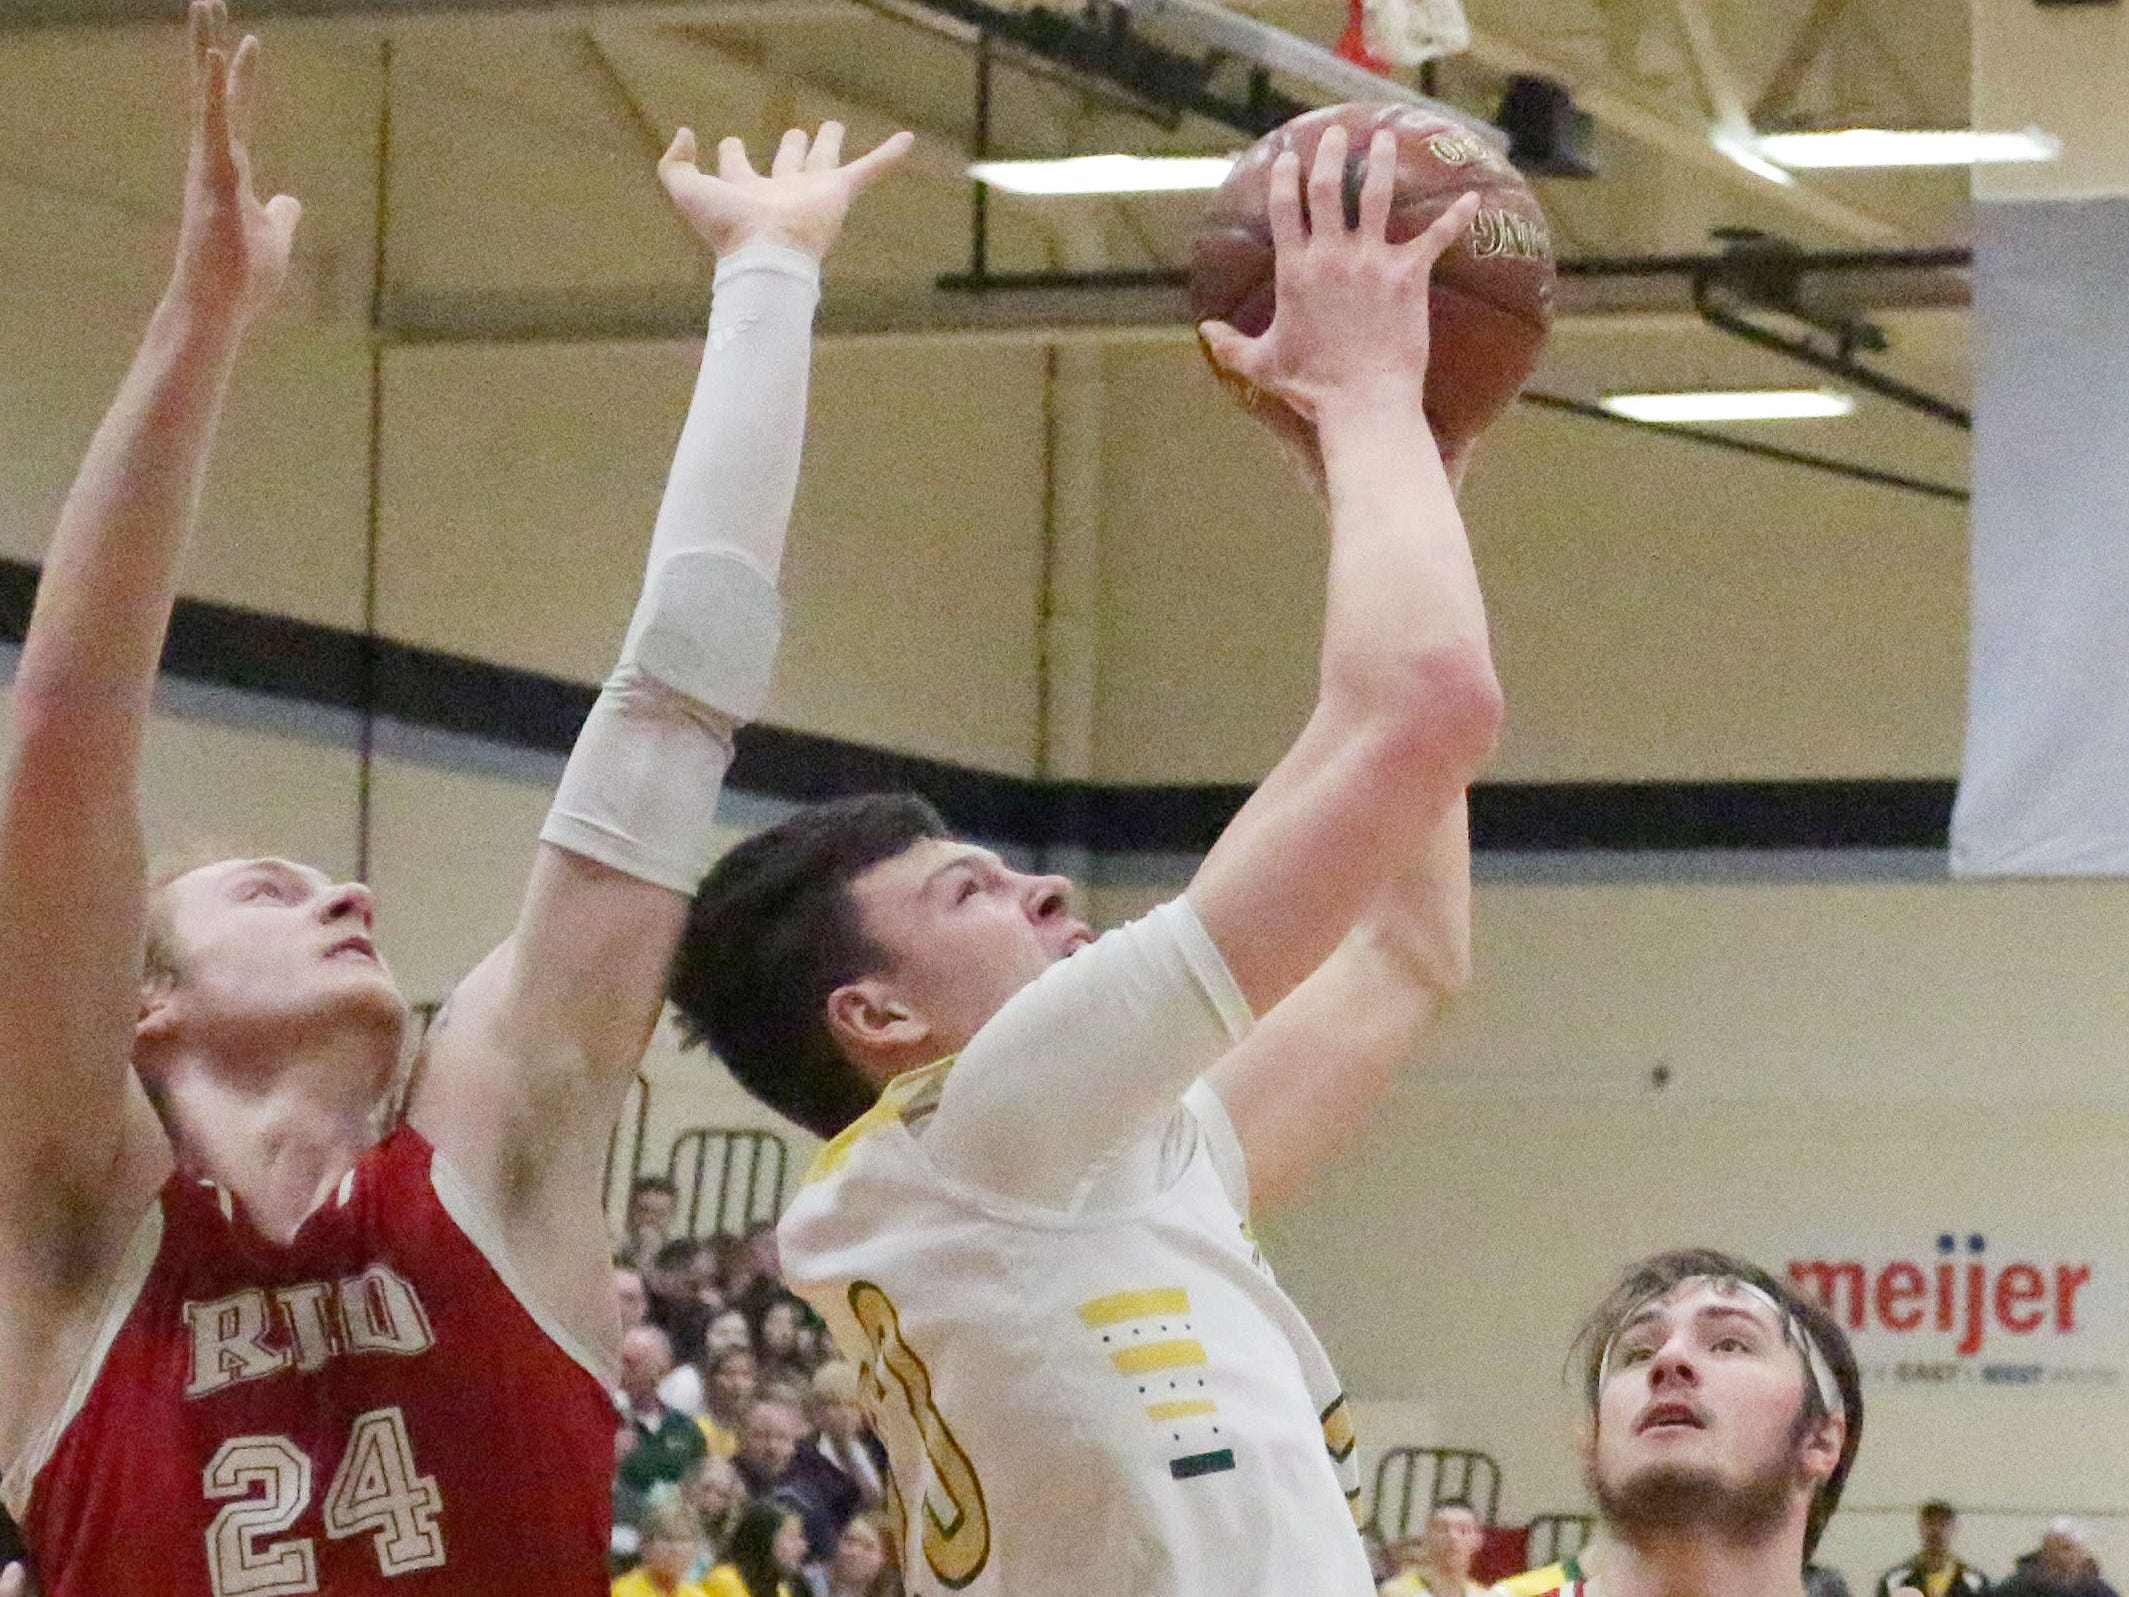 Sheboygan Lutheran's Jacob Ognacevic (23, center) rebounds the ball against Rio, Saturday, March 9, 2019, in West Bend, Wis.